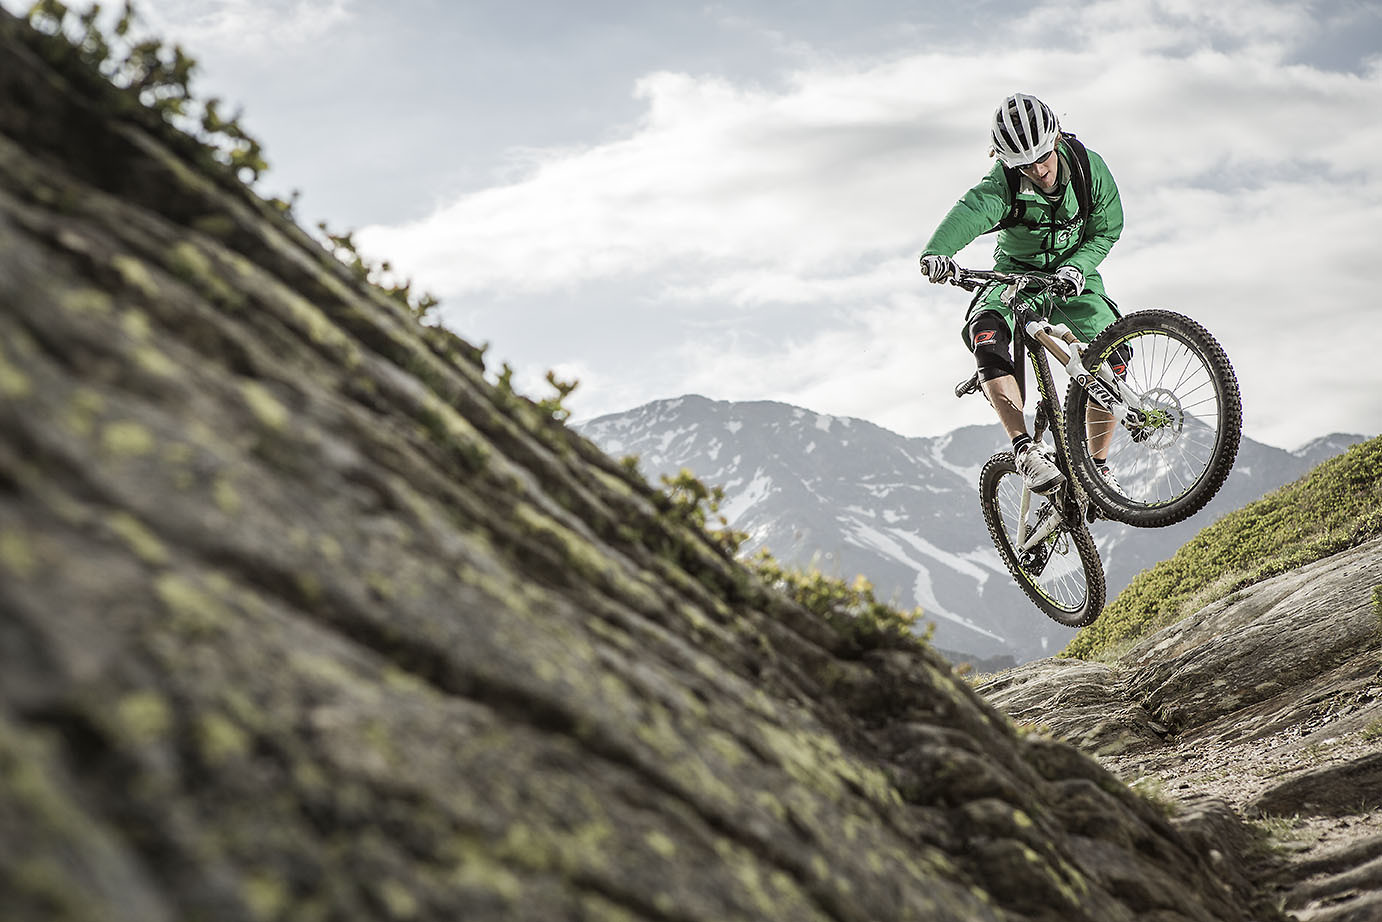 Stylin´ - Hannes Klausner - Mountain Biking Pictures - Vital MTB